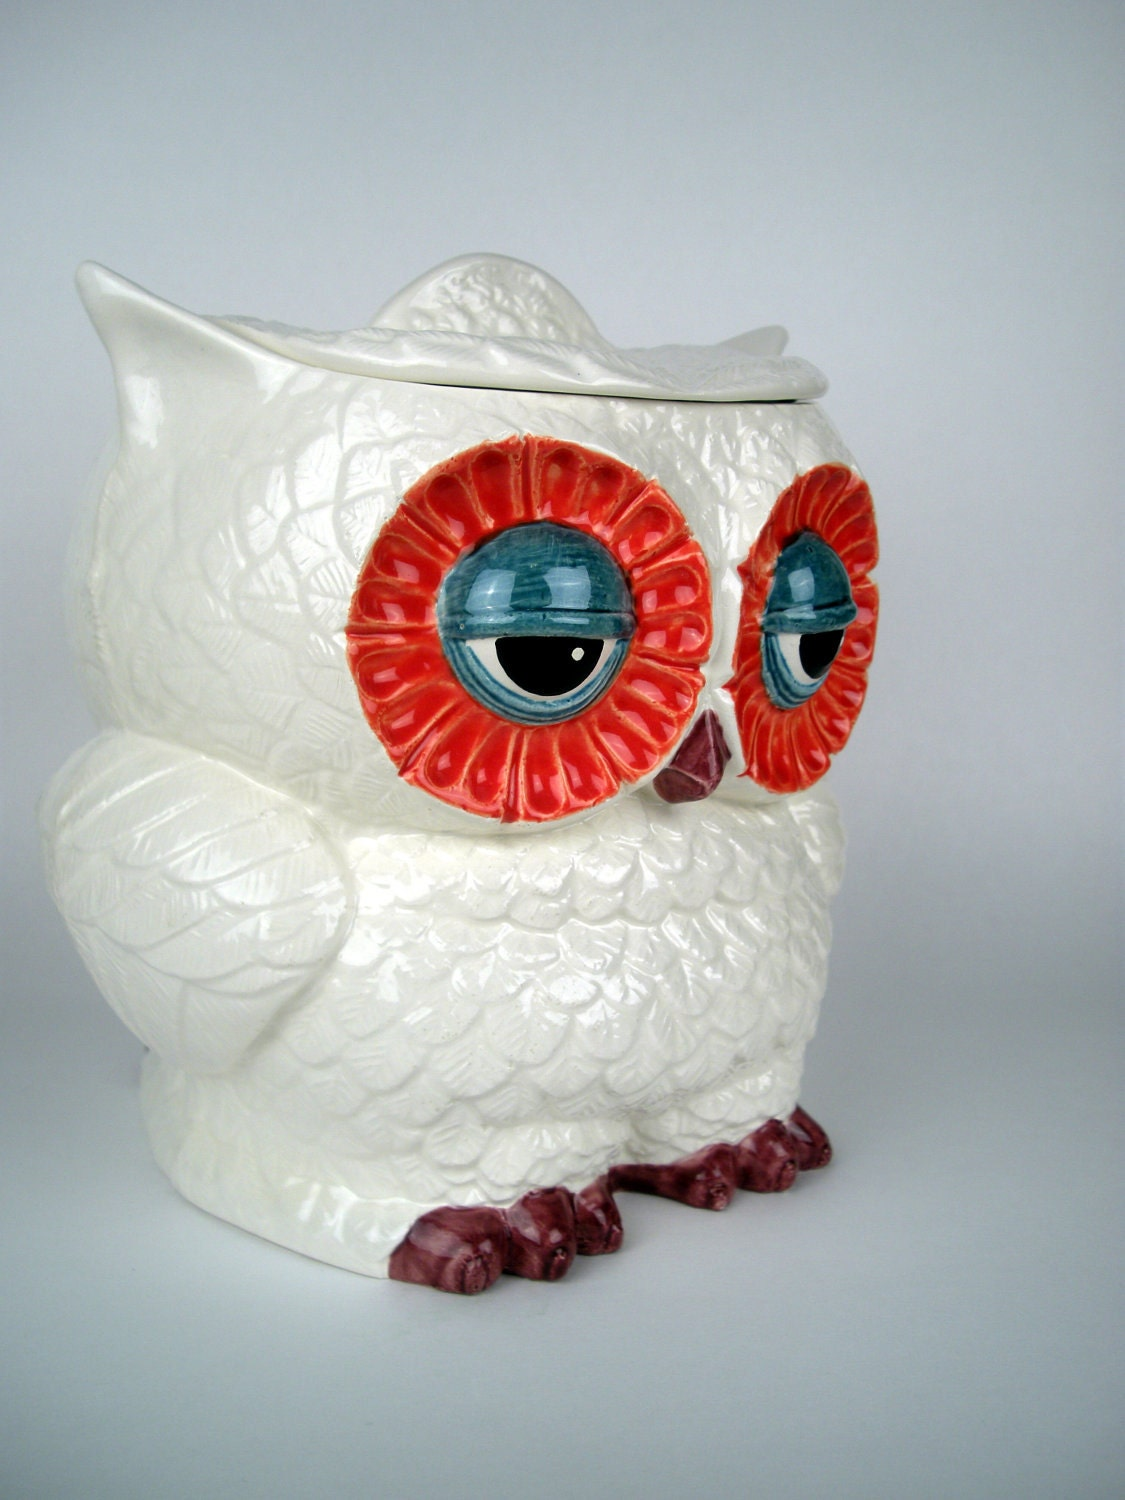 Vintage Ceramic Owl Cookie Jar, Large - modclay